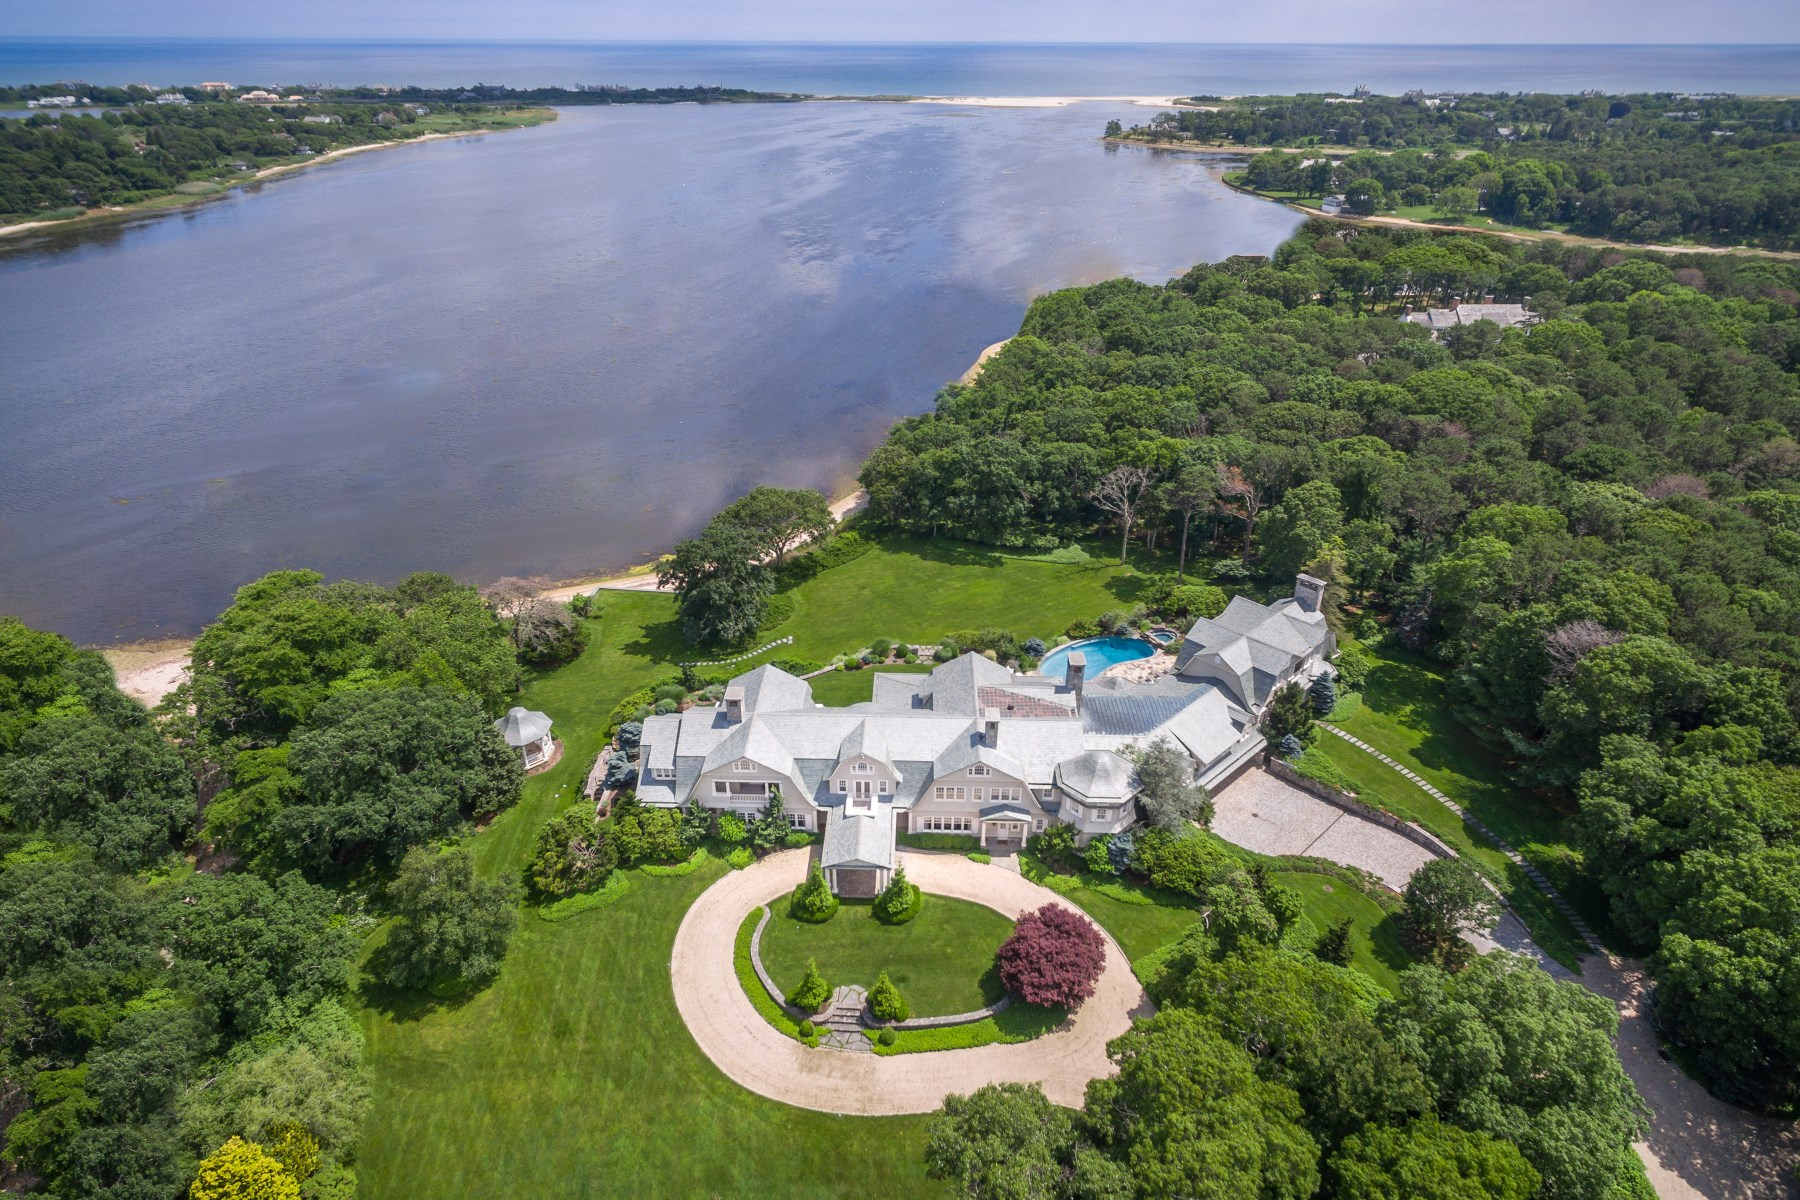 Casa Unifamiliar por un Venta en Burnt Point 38 Mathews Road Wainscott, Nueva York, 11975 Estados Unidos